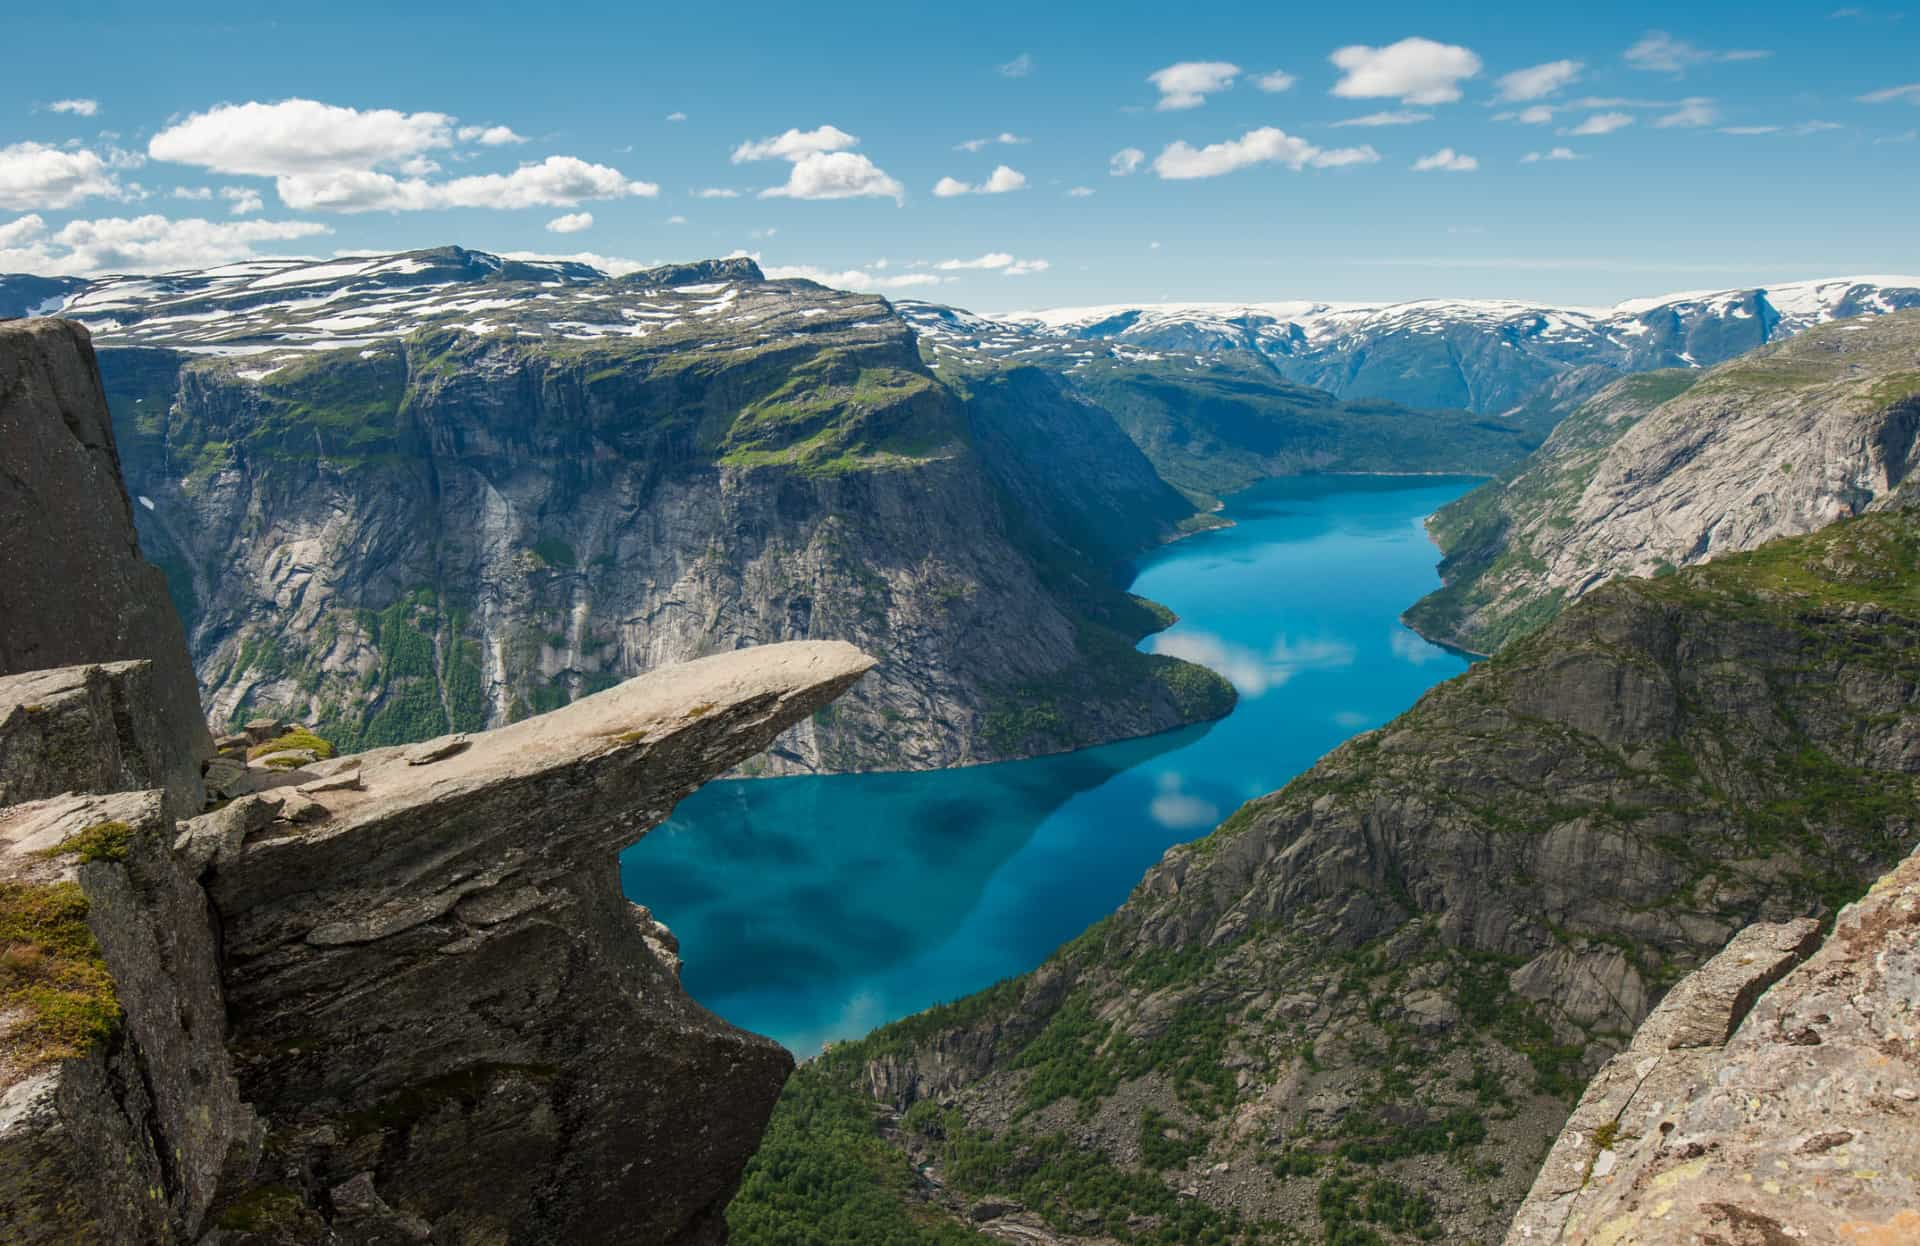 15 jaw-dropping coastlines and cliffs around the world